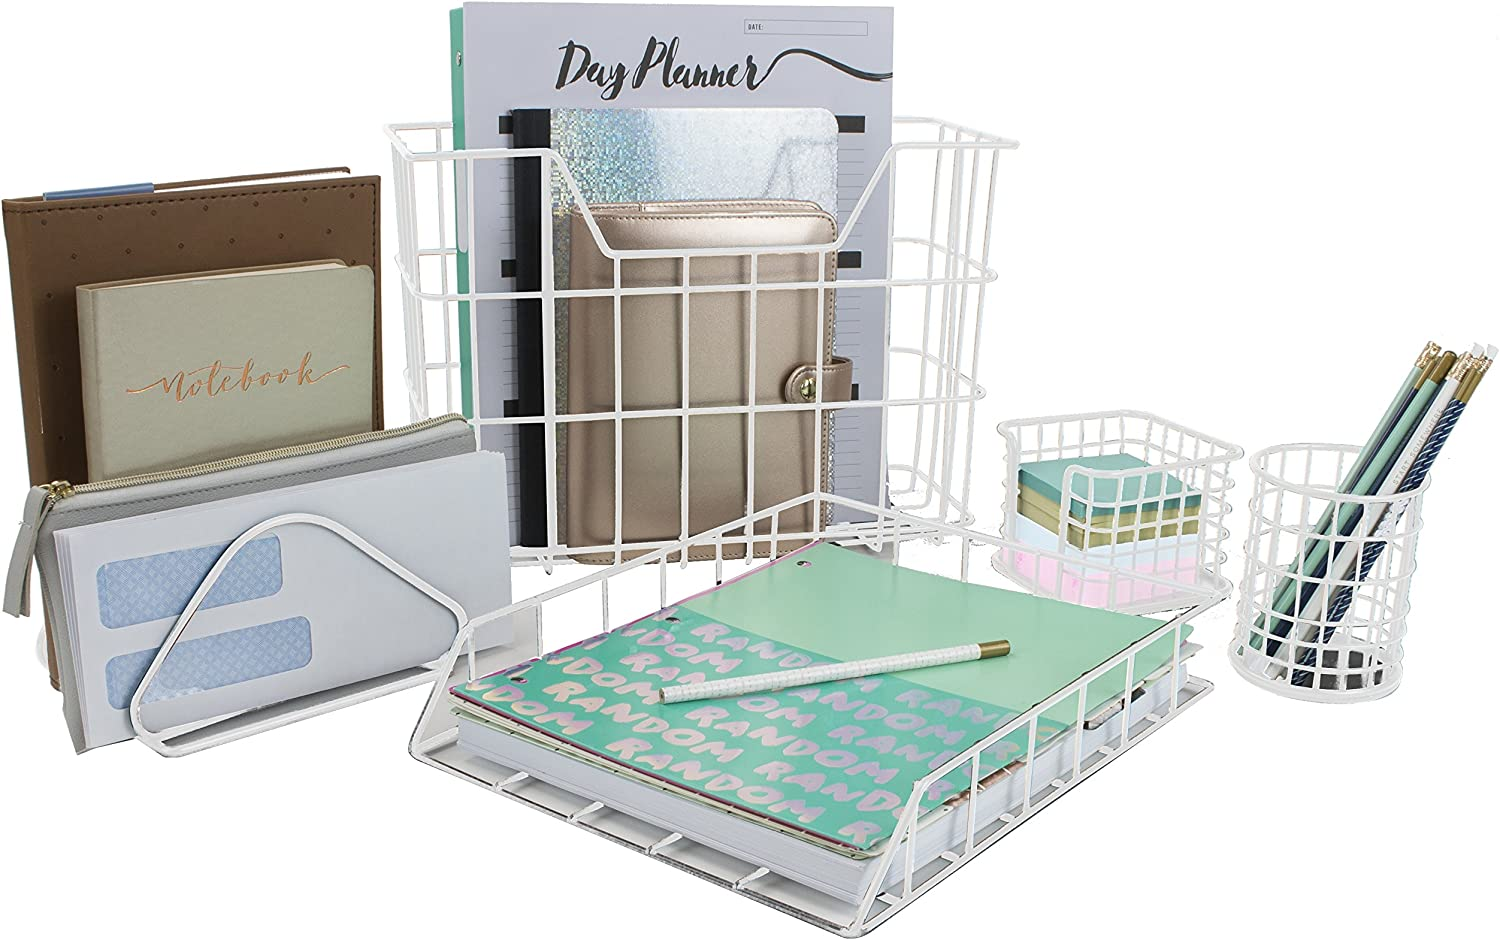 Sorbus Desk Organizer Set, 47-Piece Desk Accessories Set Includes Pencil Cup  Holder, Letter Sorter, Letter Tray, Hanging File Organizer, and Sticky